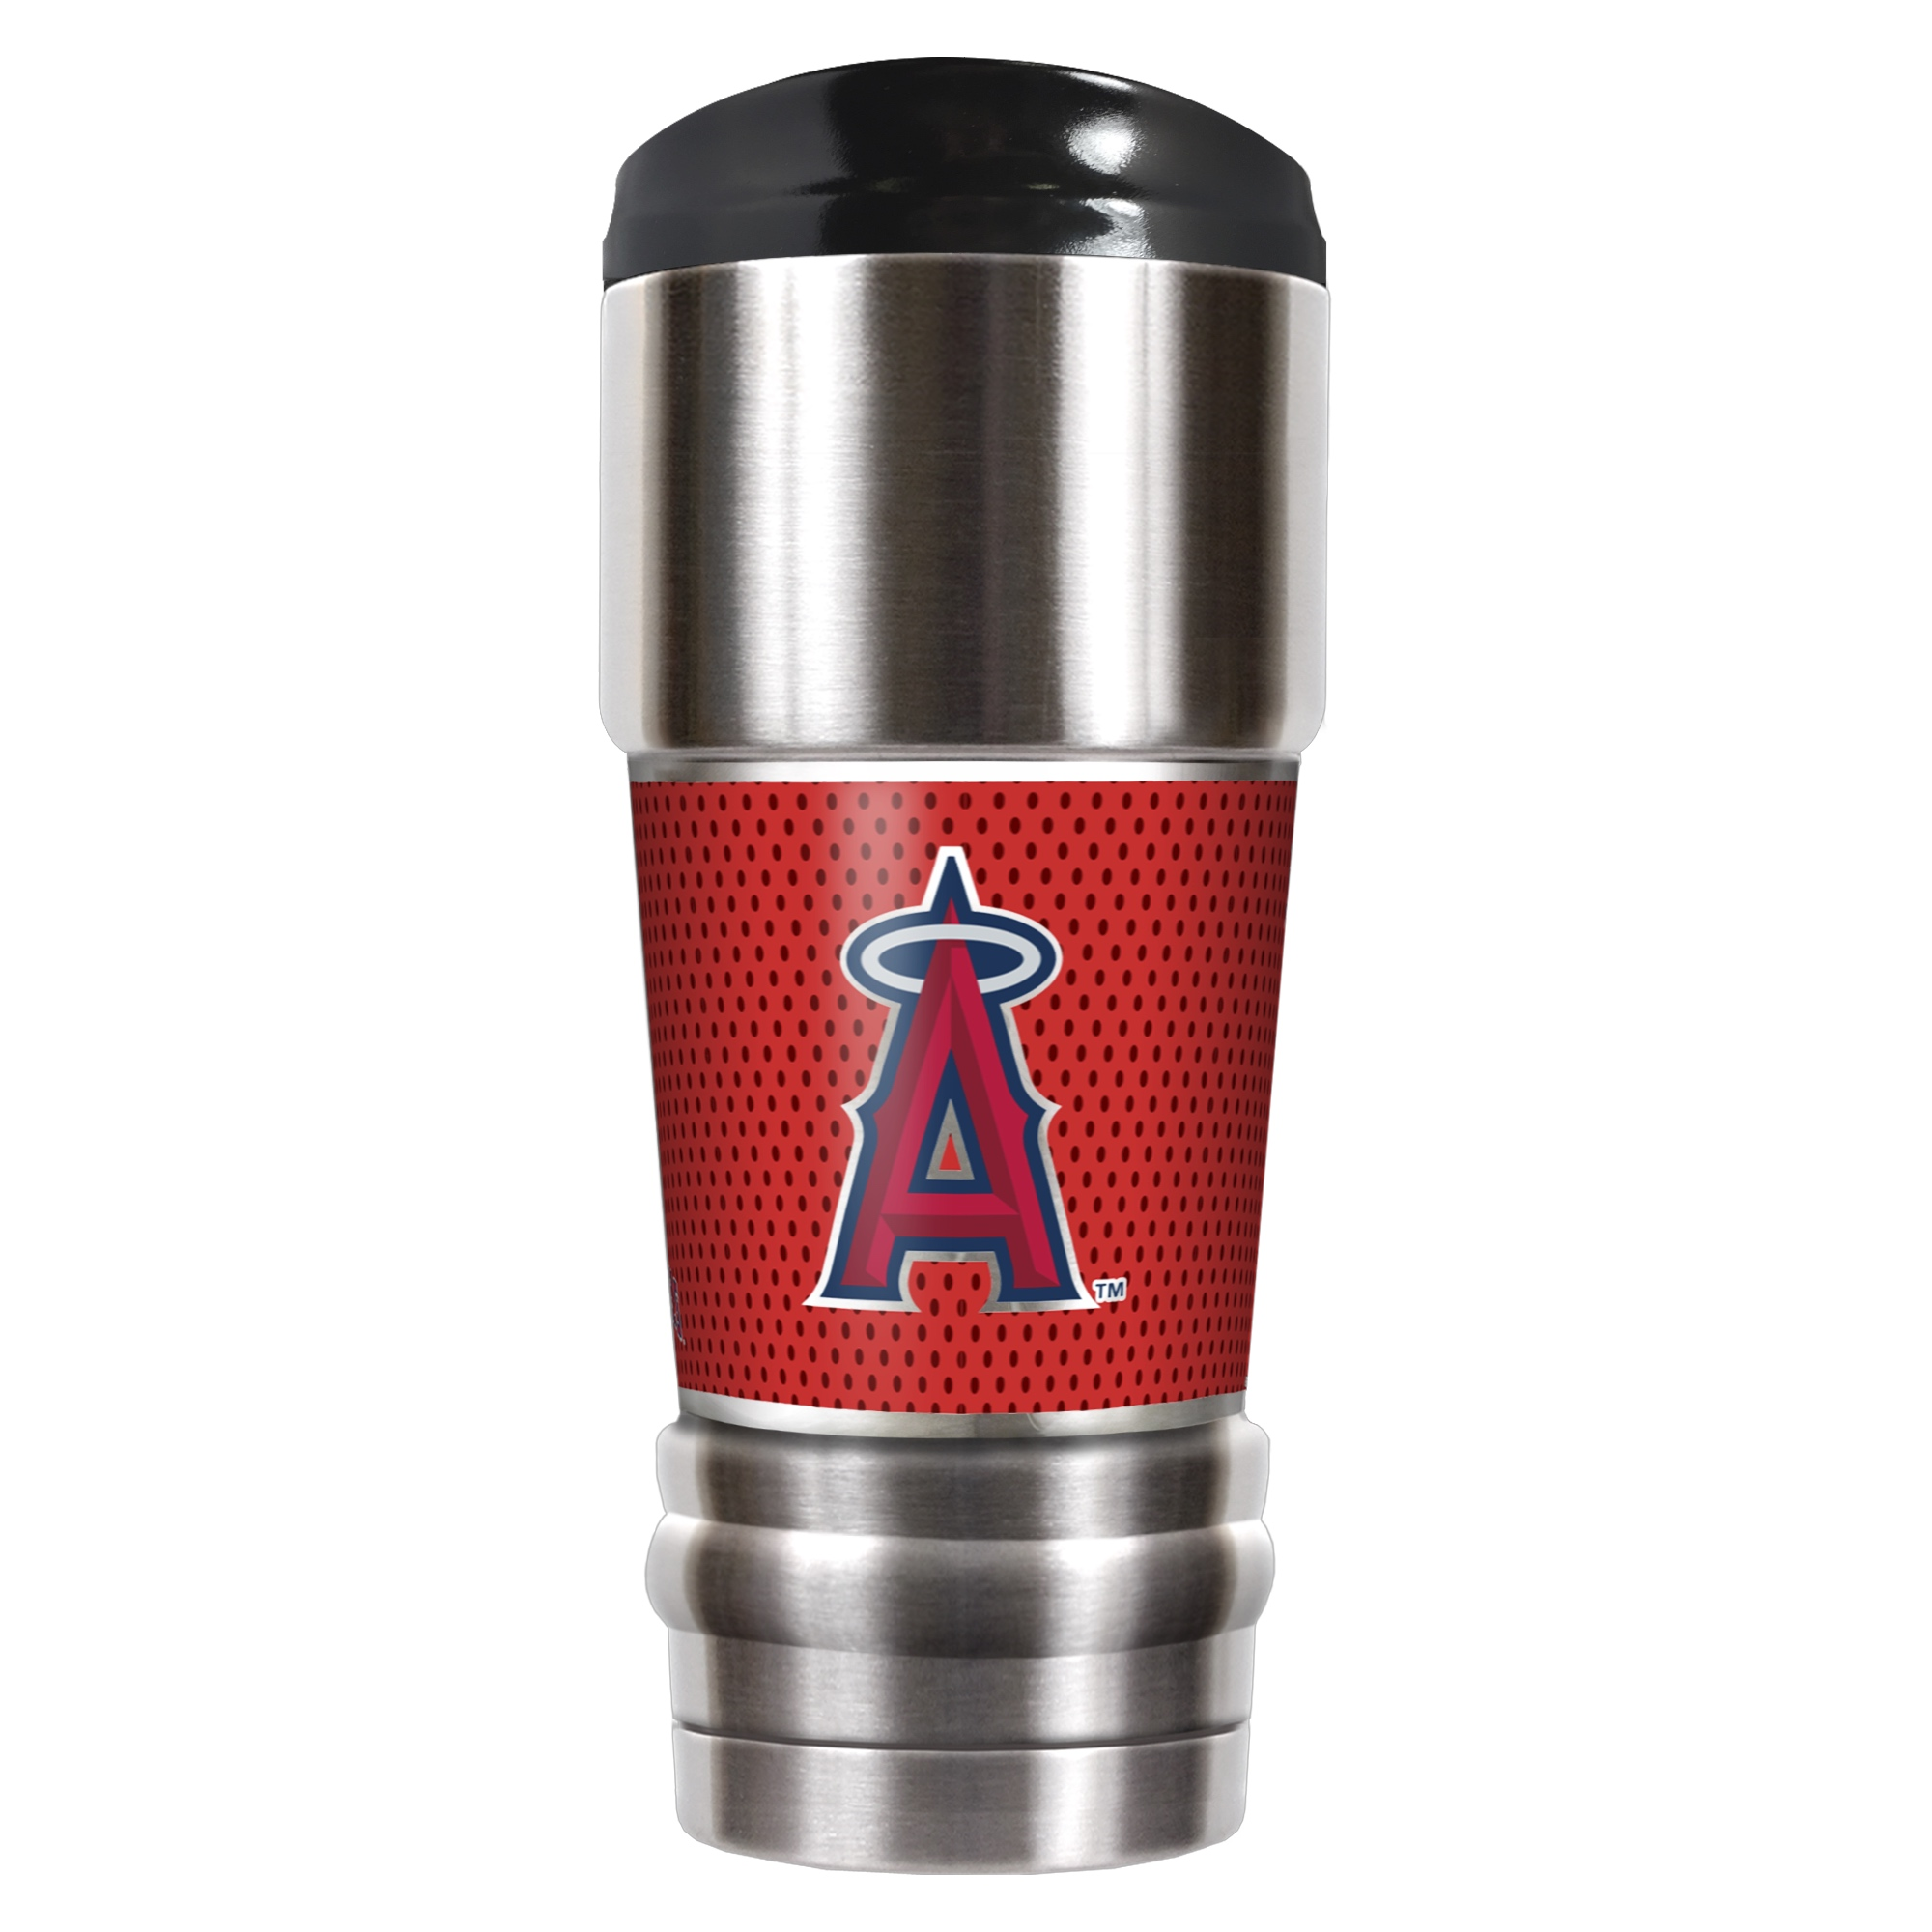 Los Angeles Angels 2018 Players' Weekend 18oz. Vacuum-Insulated Travel Mug - No Size